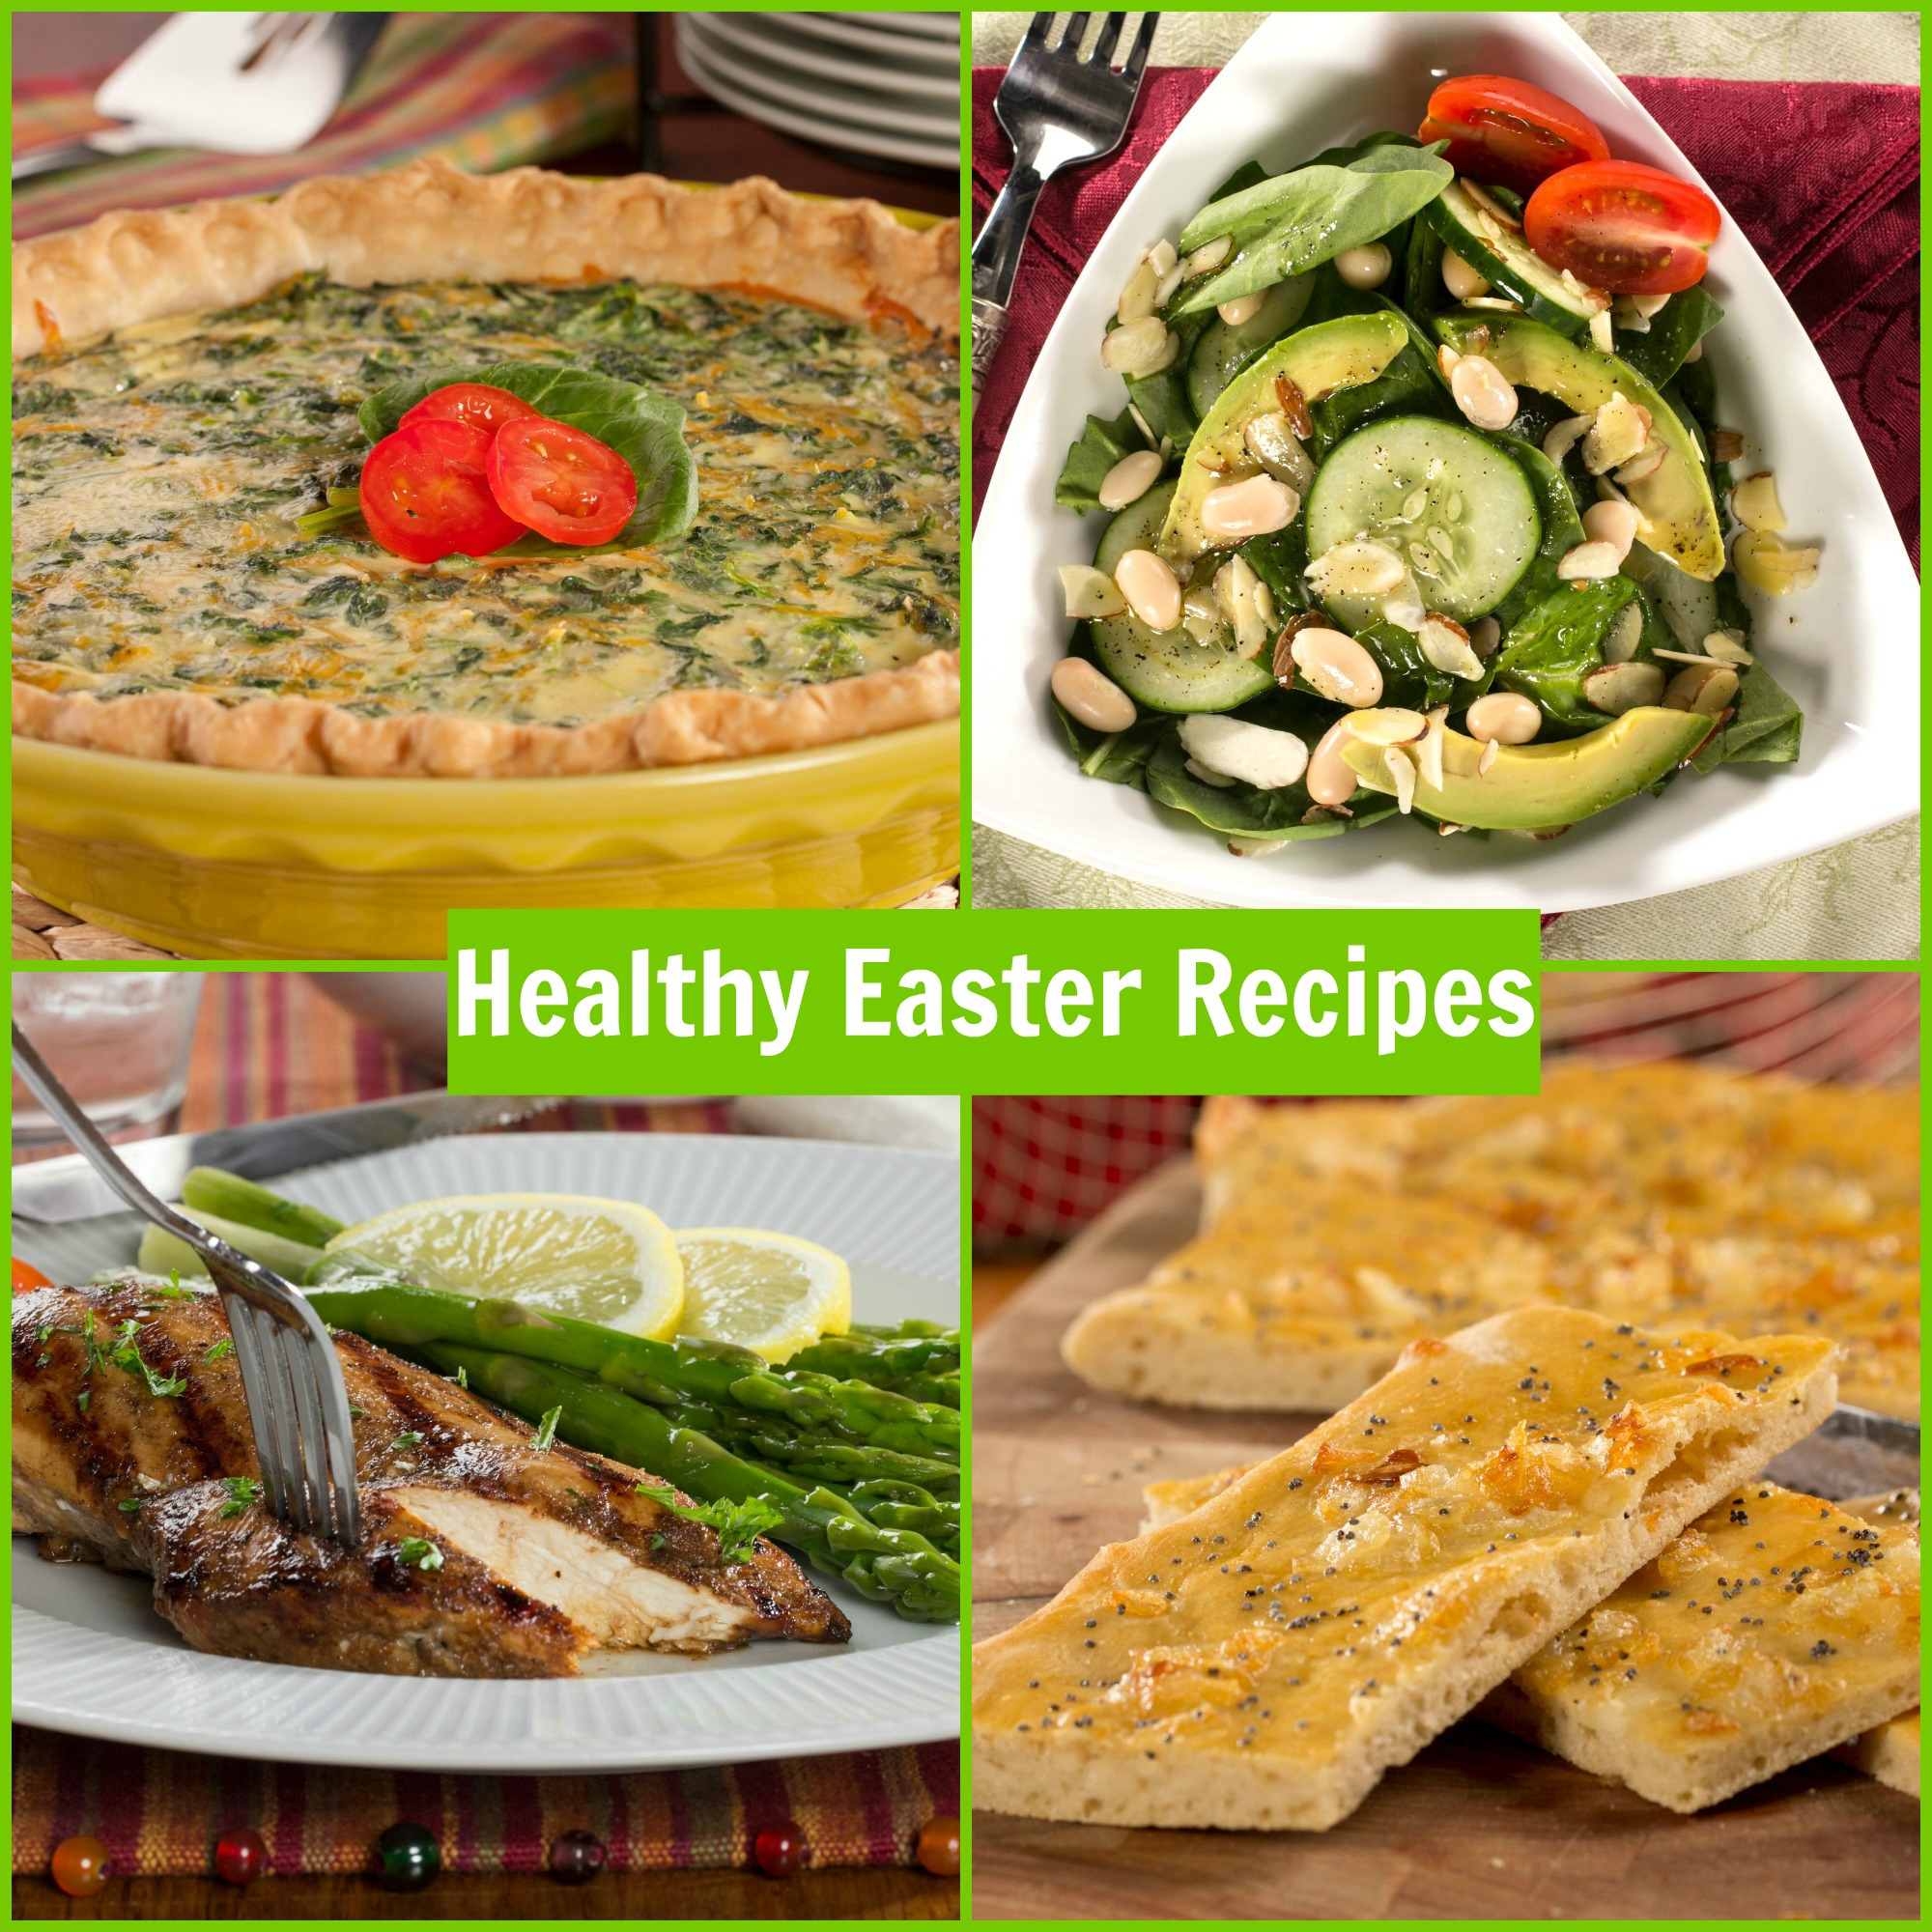 Easter dinner ideas free ecookbook mr foods blog in fact weve made it easy with 30 recipes that are not only delicious but are also diabetic friendly forumfinder